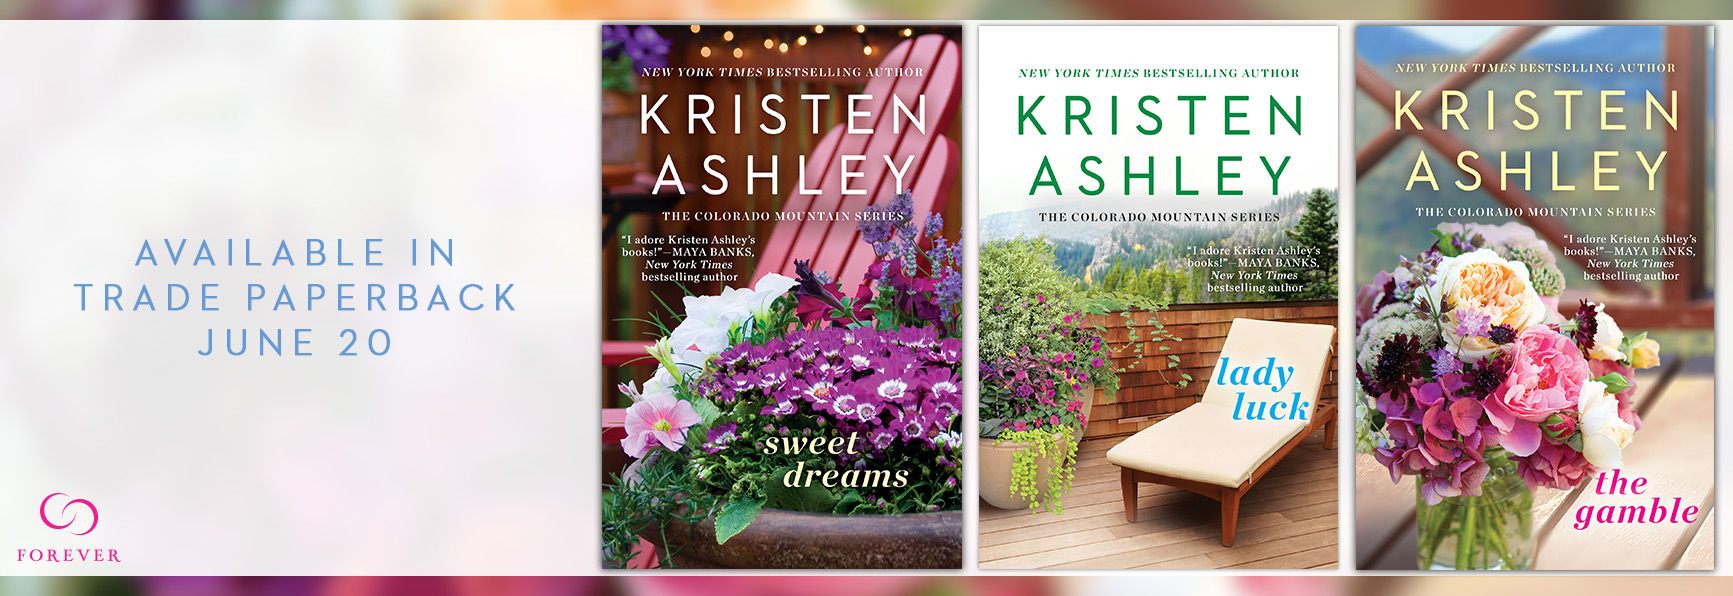 SPOTLIGHT/GIVEAWAY: 'Colorado Mountain' Series by Kristen Ashley